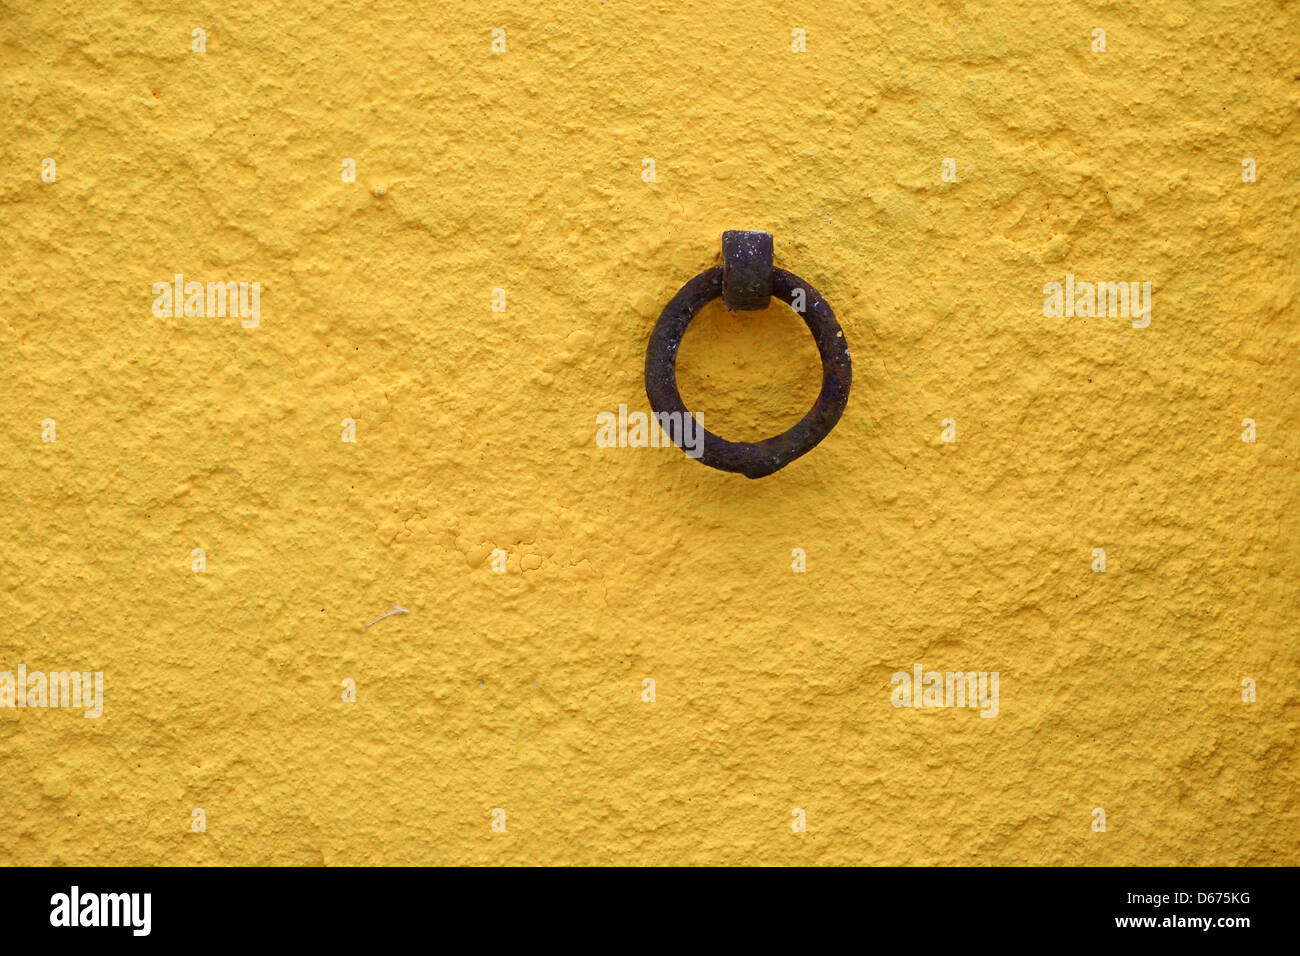 Anchor ring - Stock Image